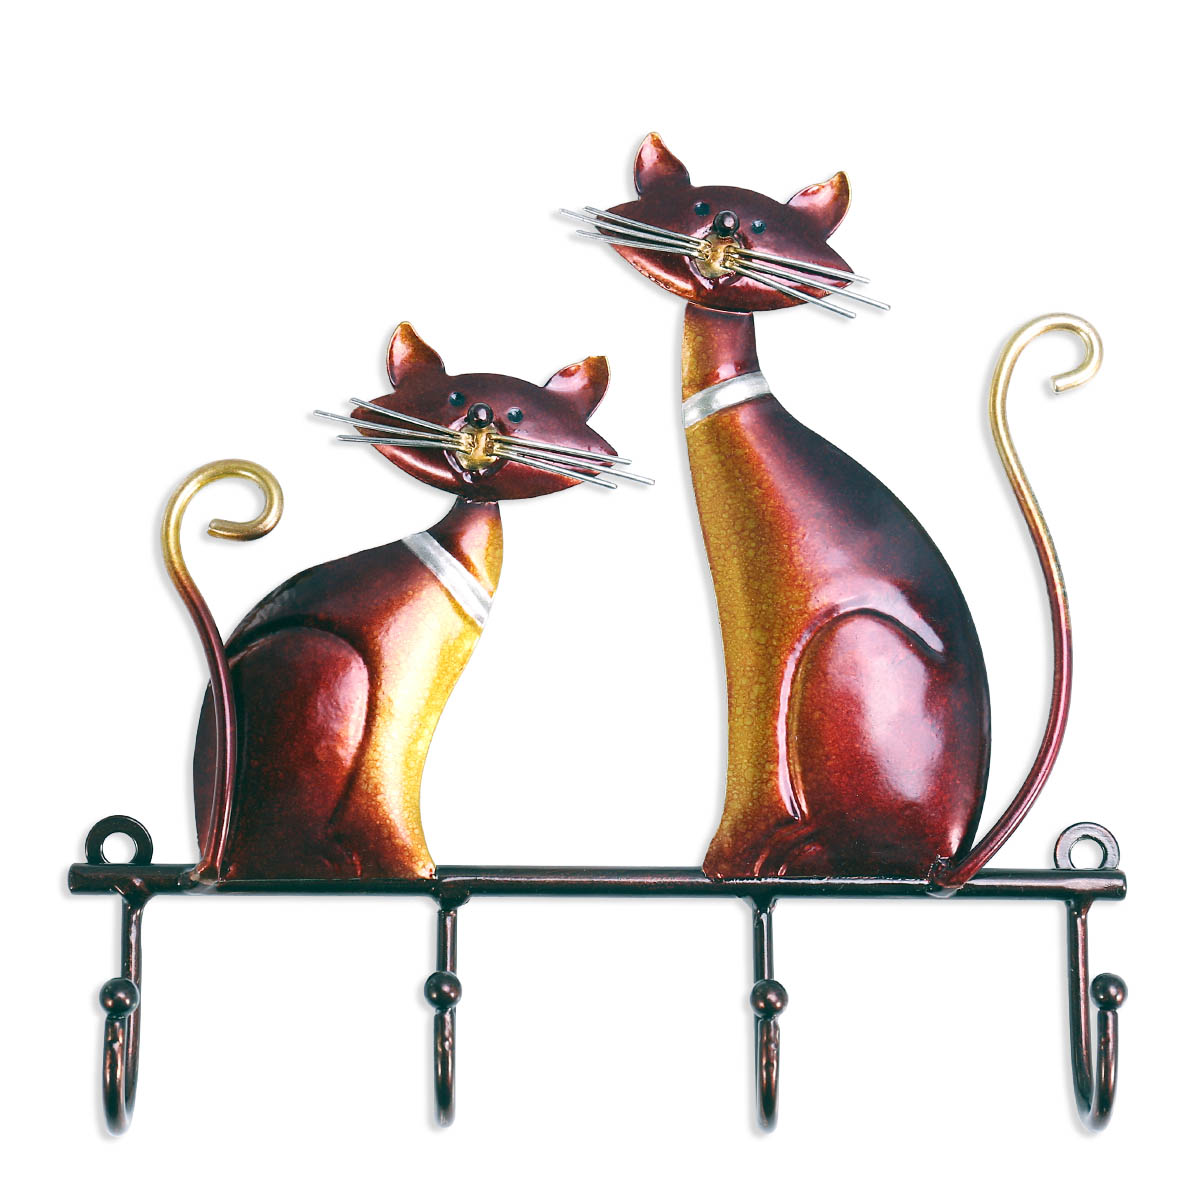 best and cheap wine red tooarts iron cat wall hanger hook decor 4 hooks for coats bags wall. Black Bedroom Furniture Sets. Home Design Ideas